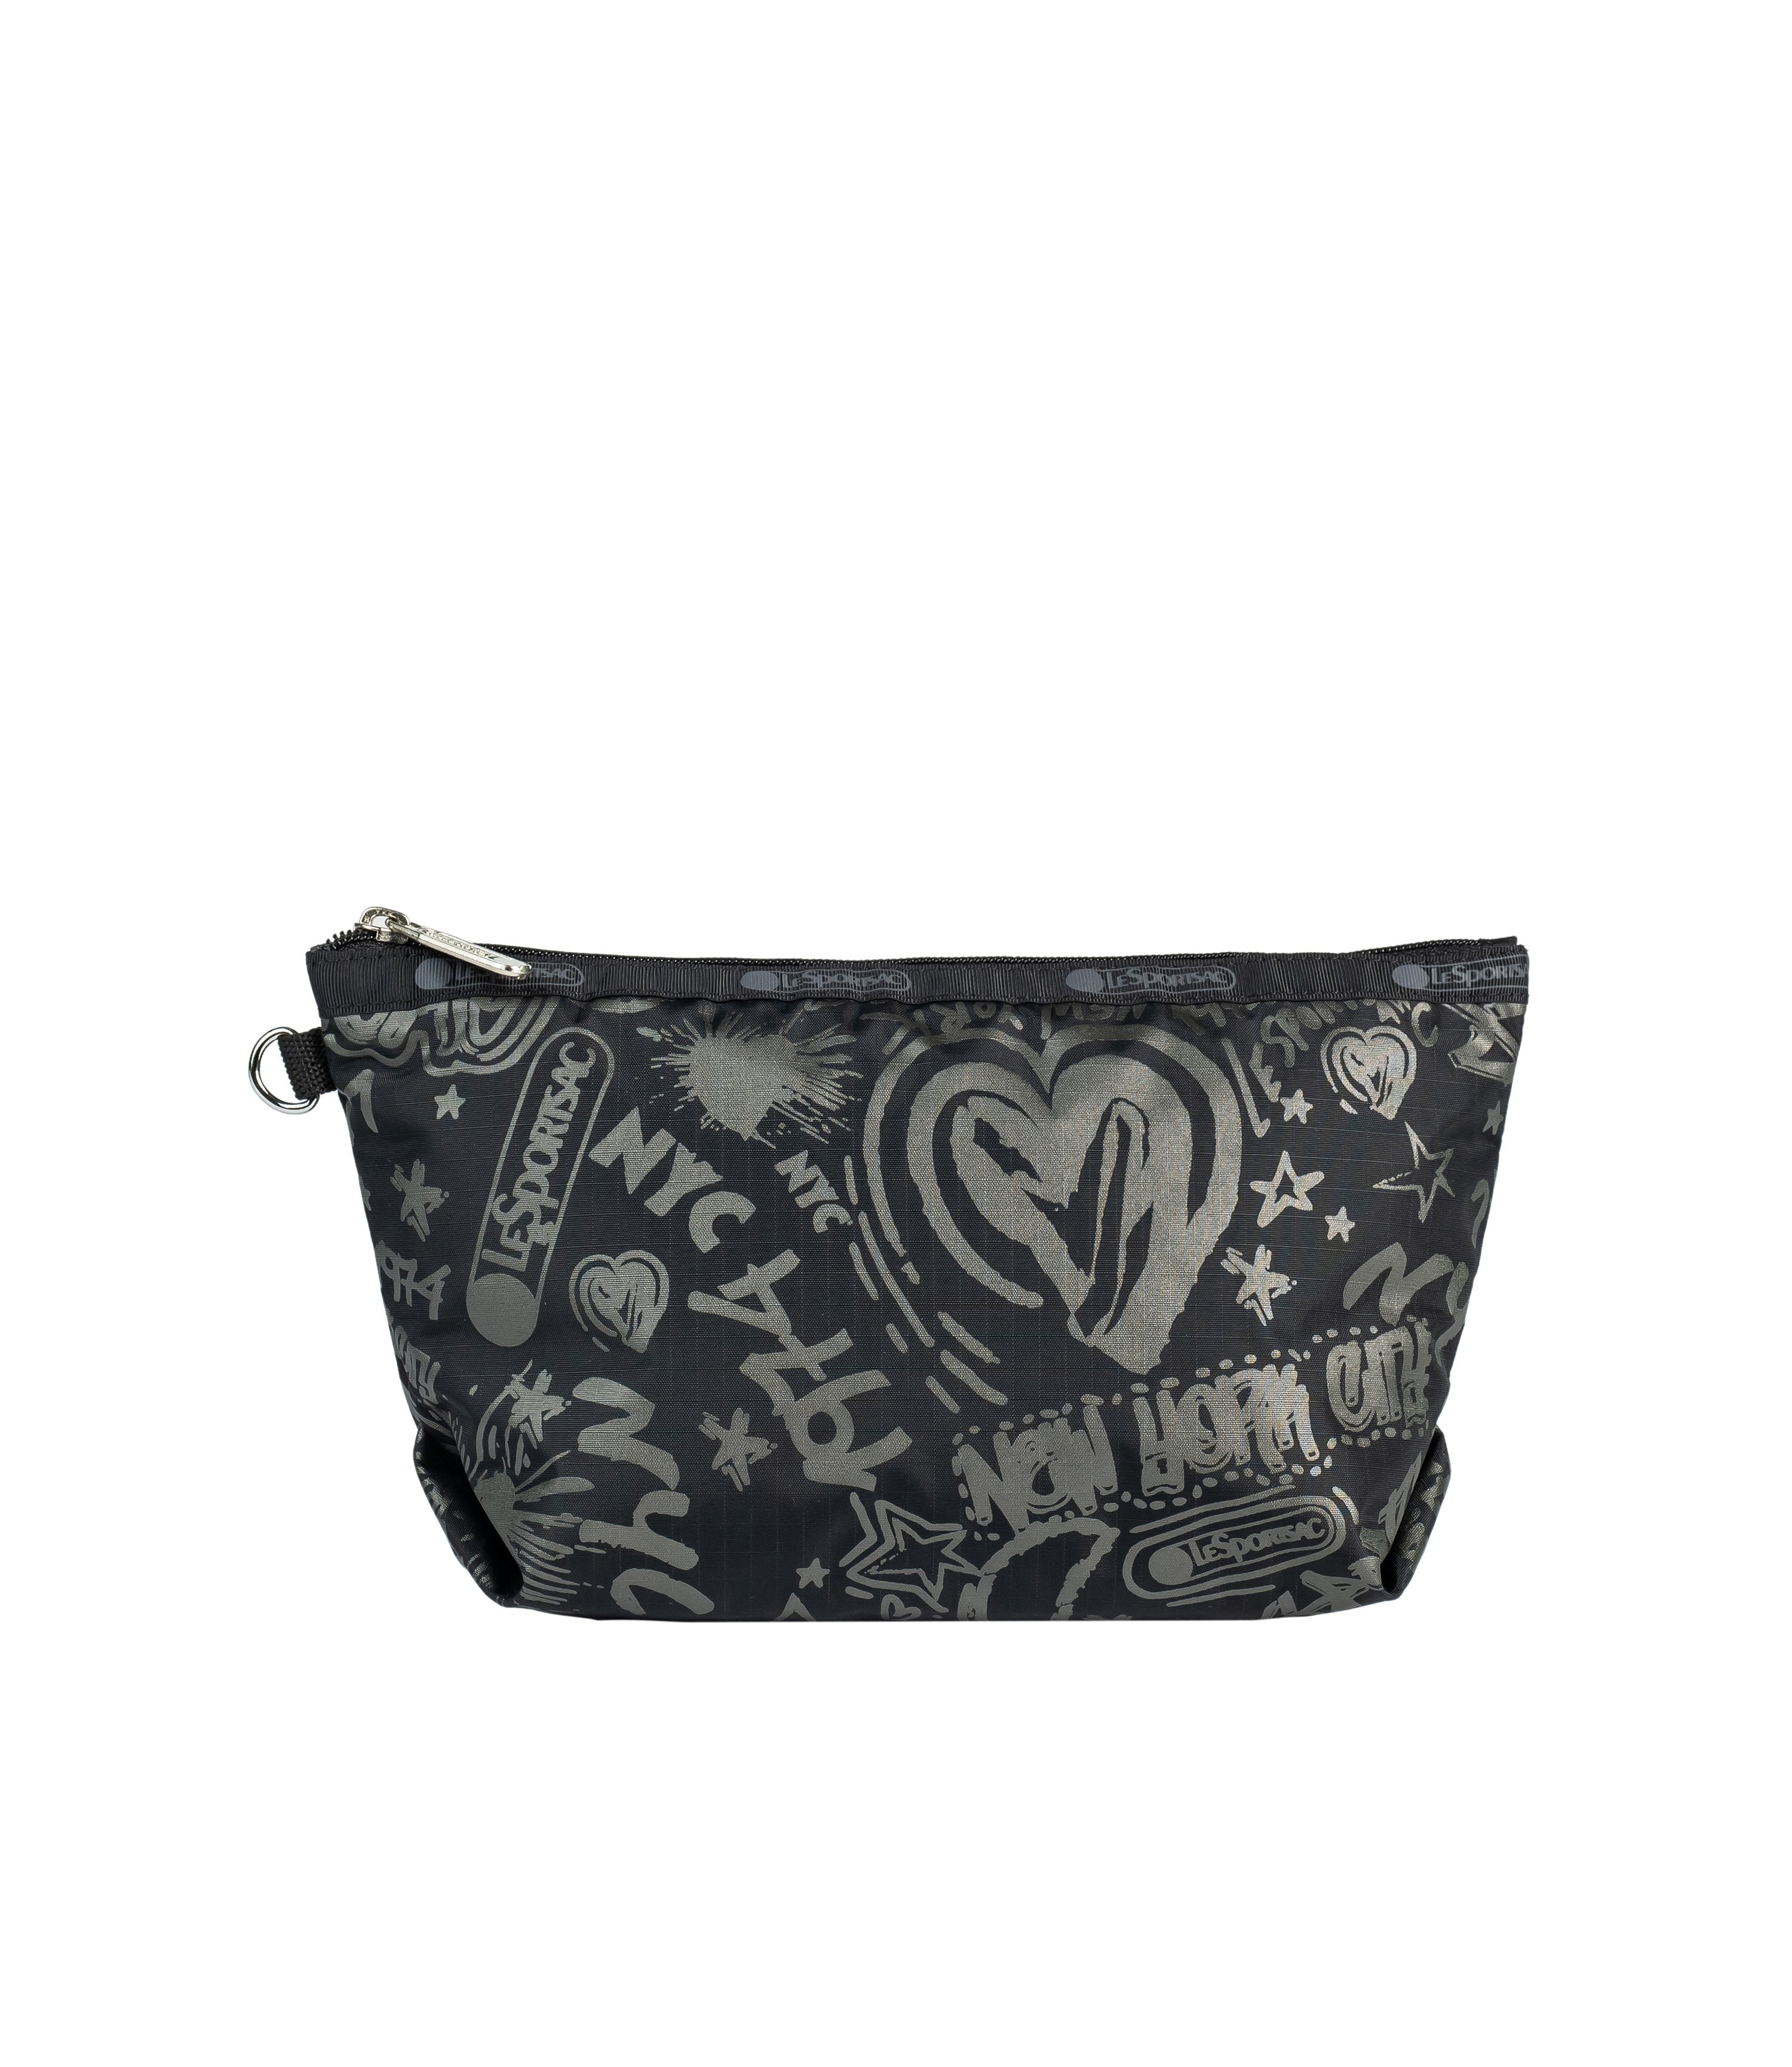 LeSportsac - Accessories - Medium Sloan Cosmetic - LeSportsac City Script print